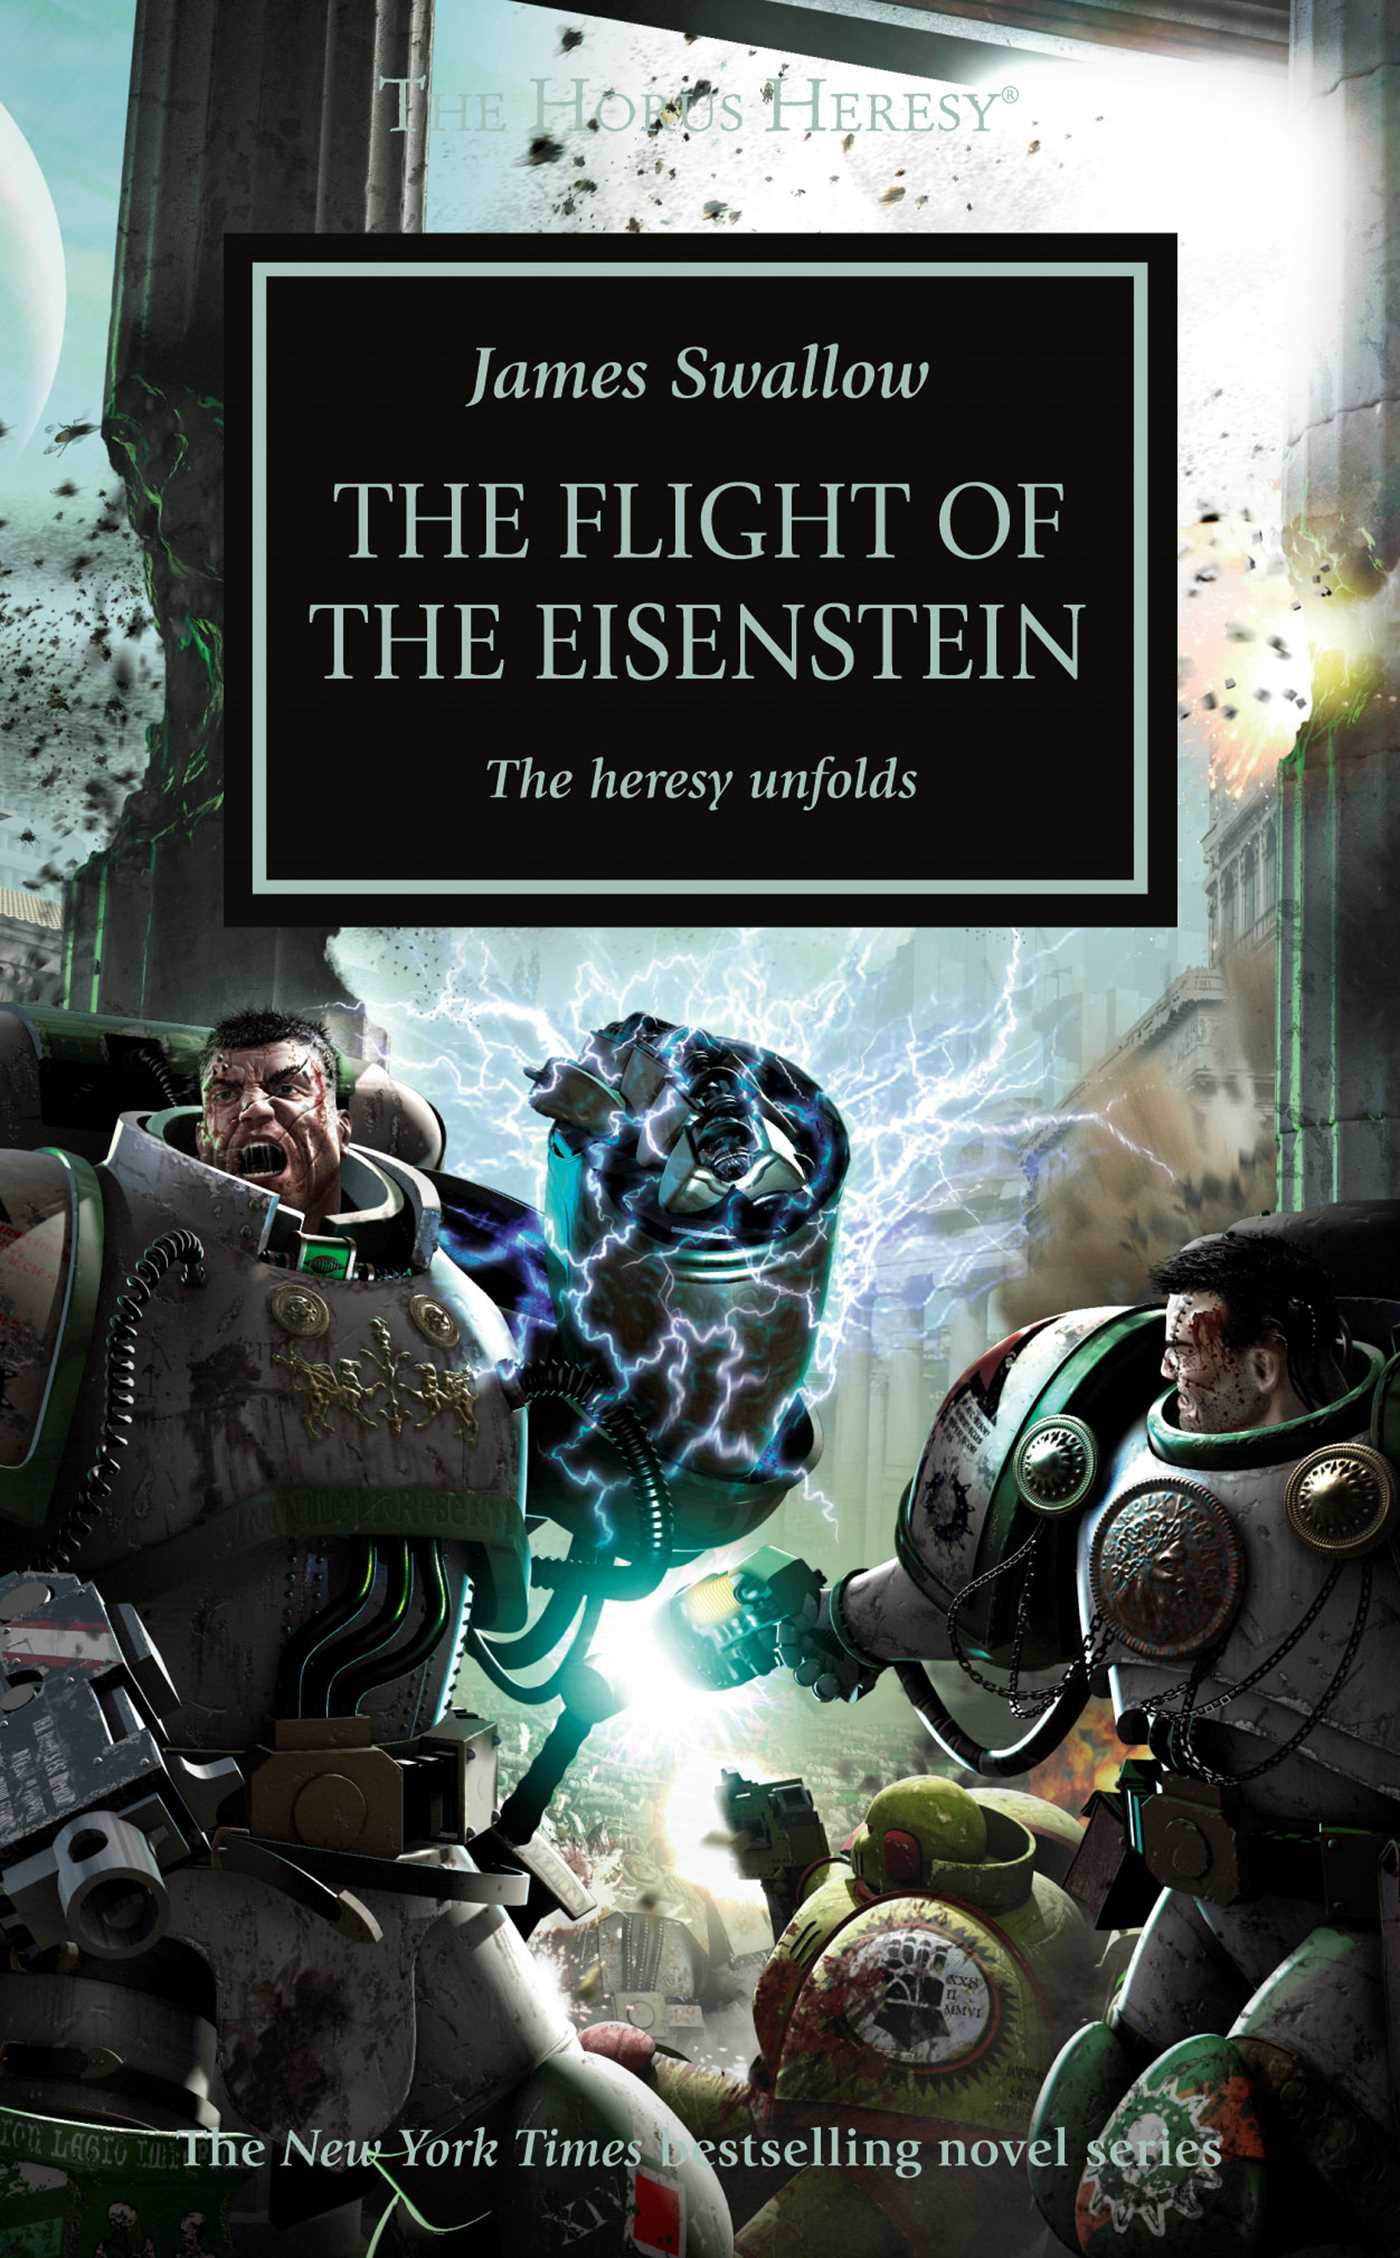 Flight of the eisenstein 9781849708128 hr